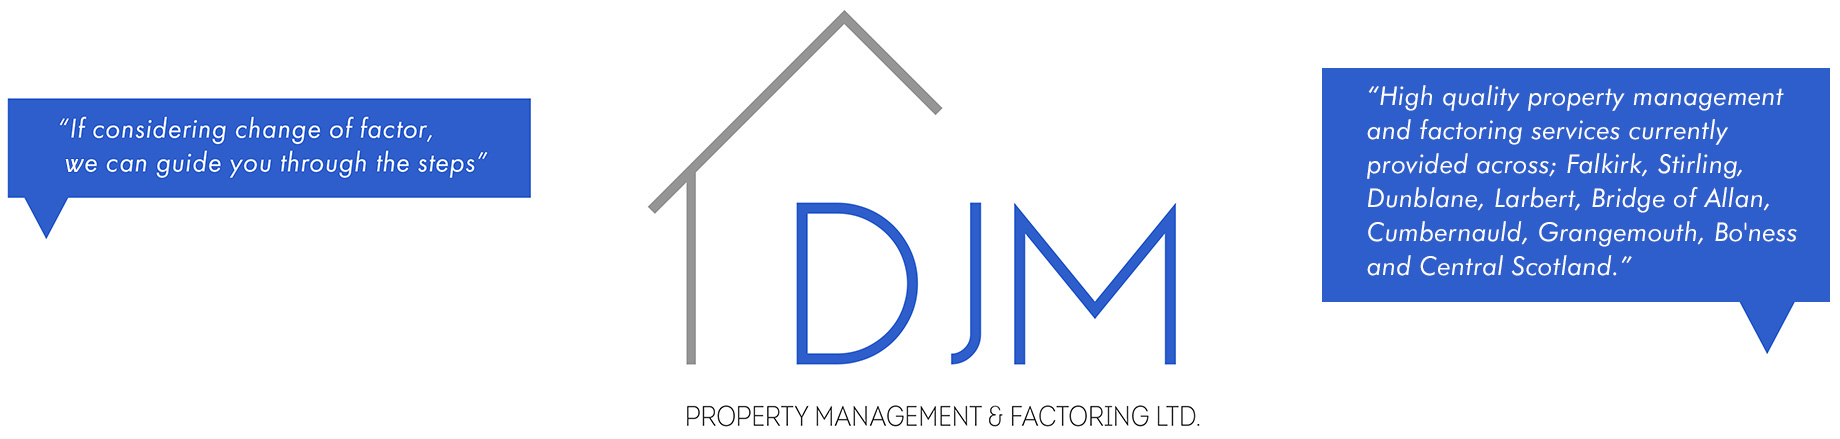 DJM Property Management & Factoring Ltd.